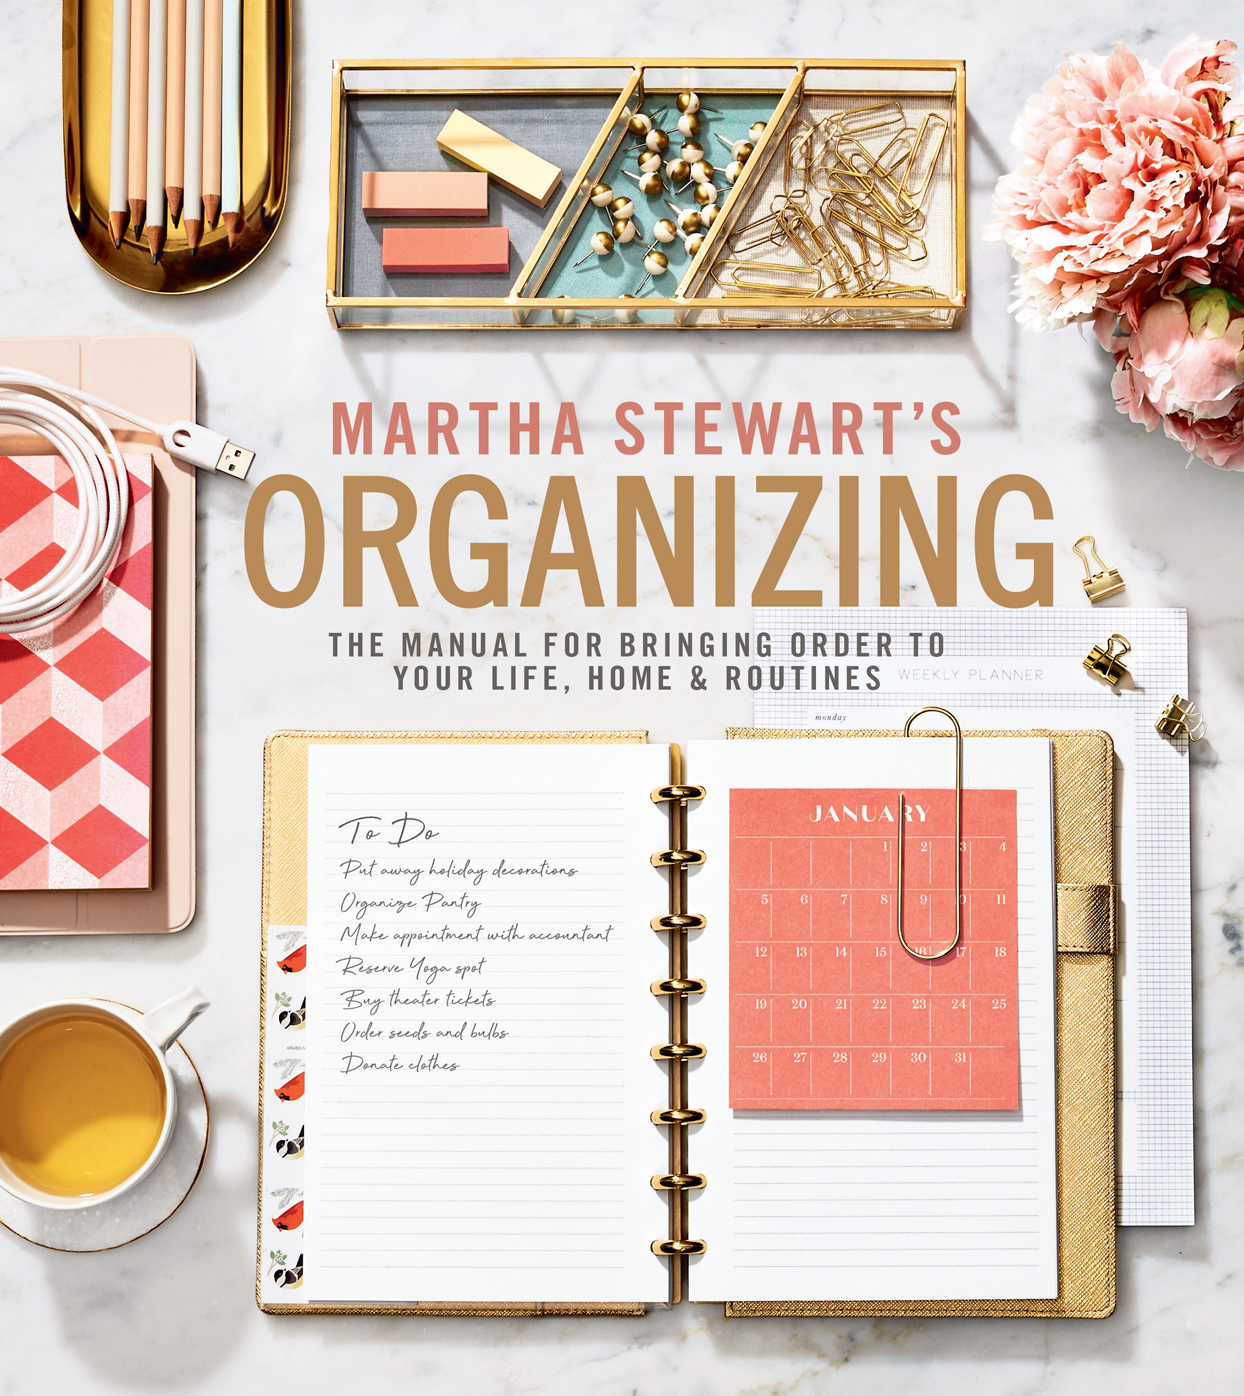 martha stewarts organizing manual book cover